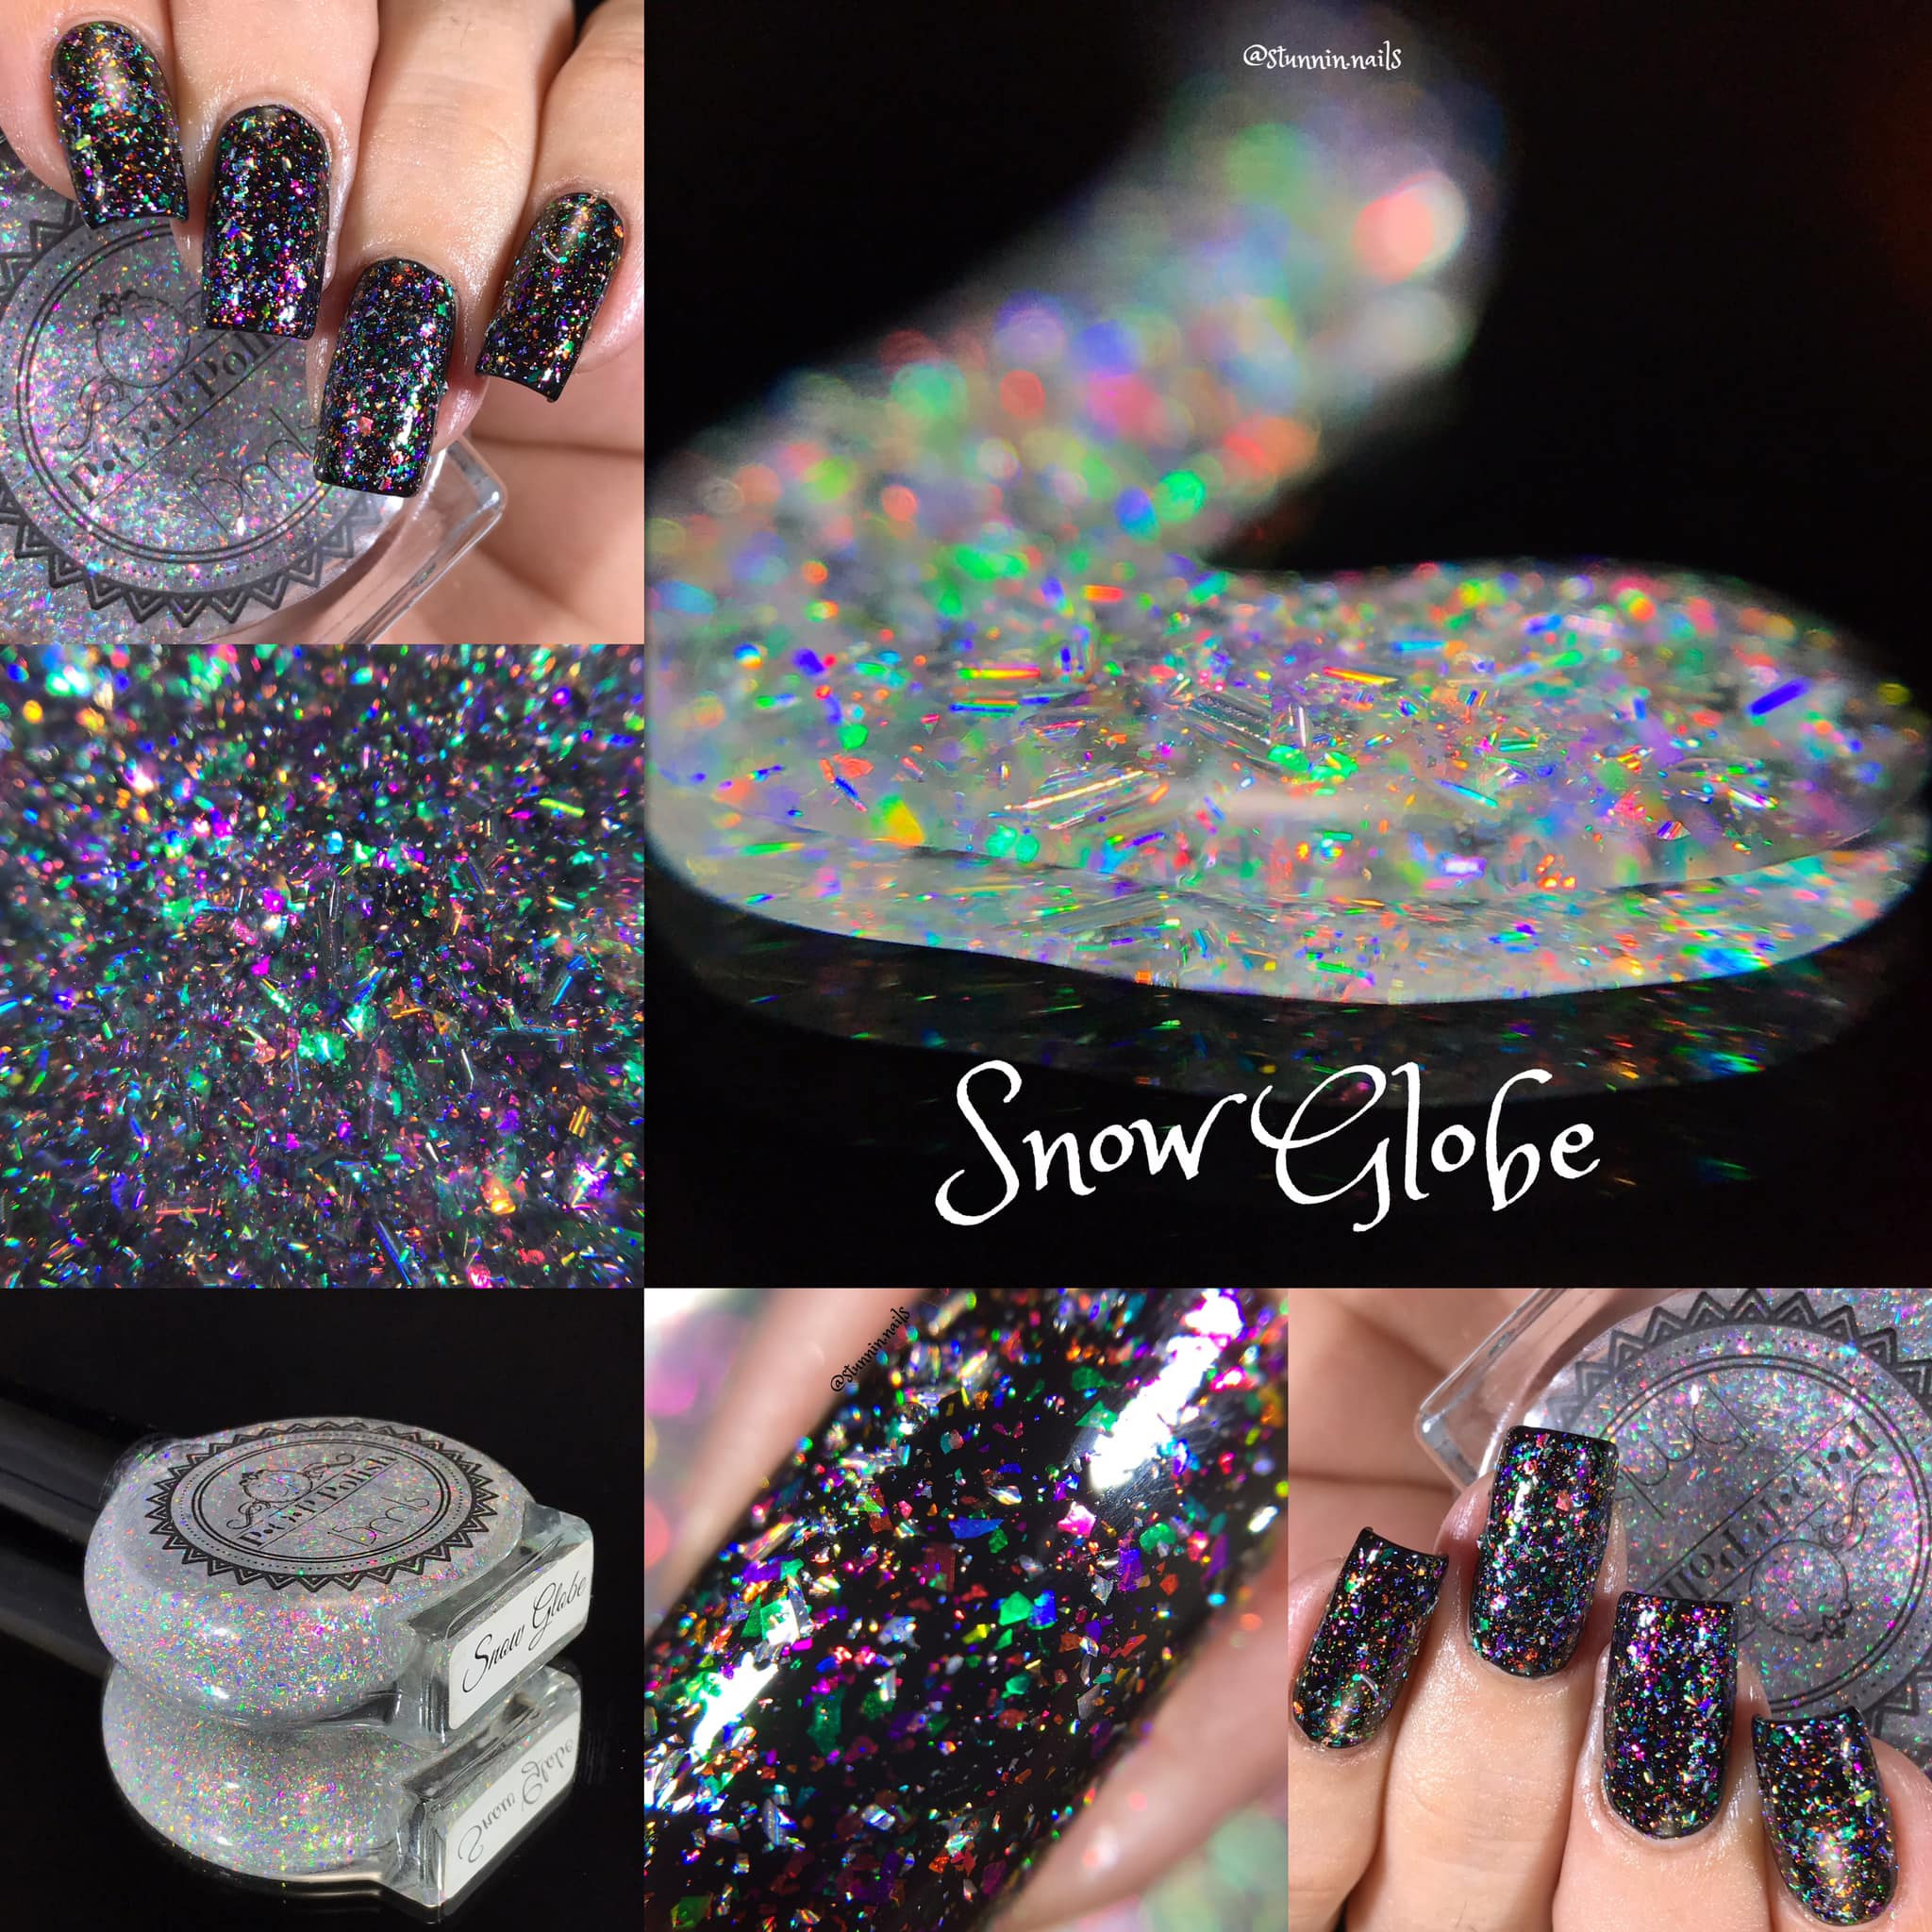 Snow Globe (Winter Top-pers)